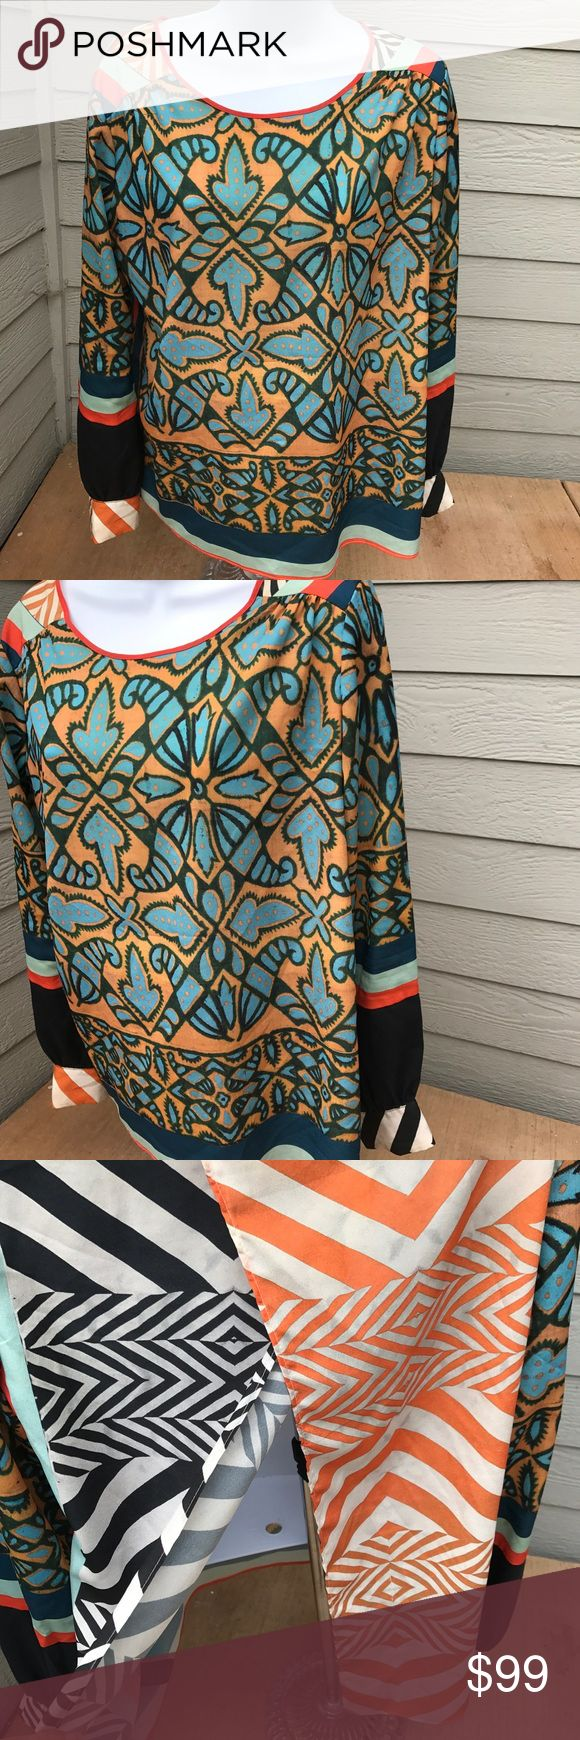 Clover canyon Blouse m Clover Canyon Tops Blouses